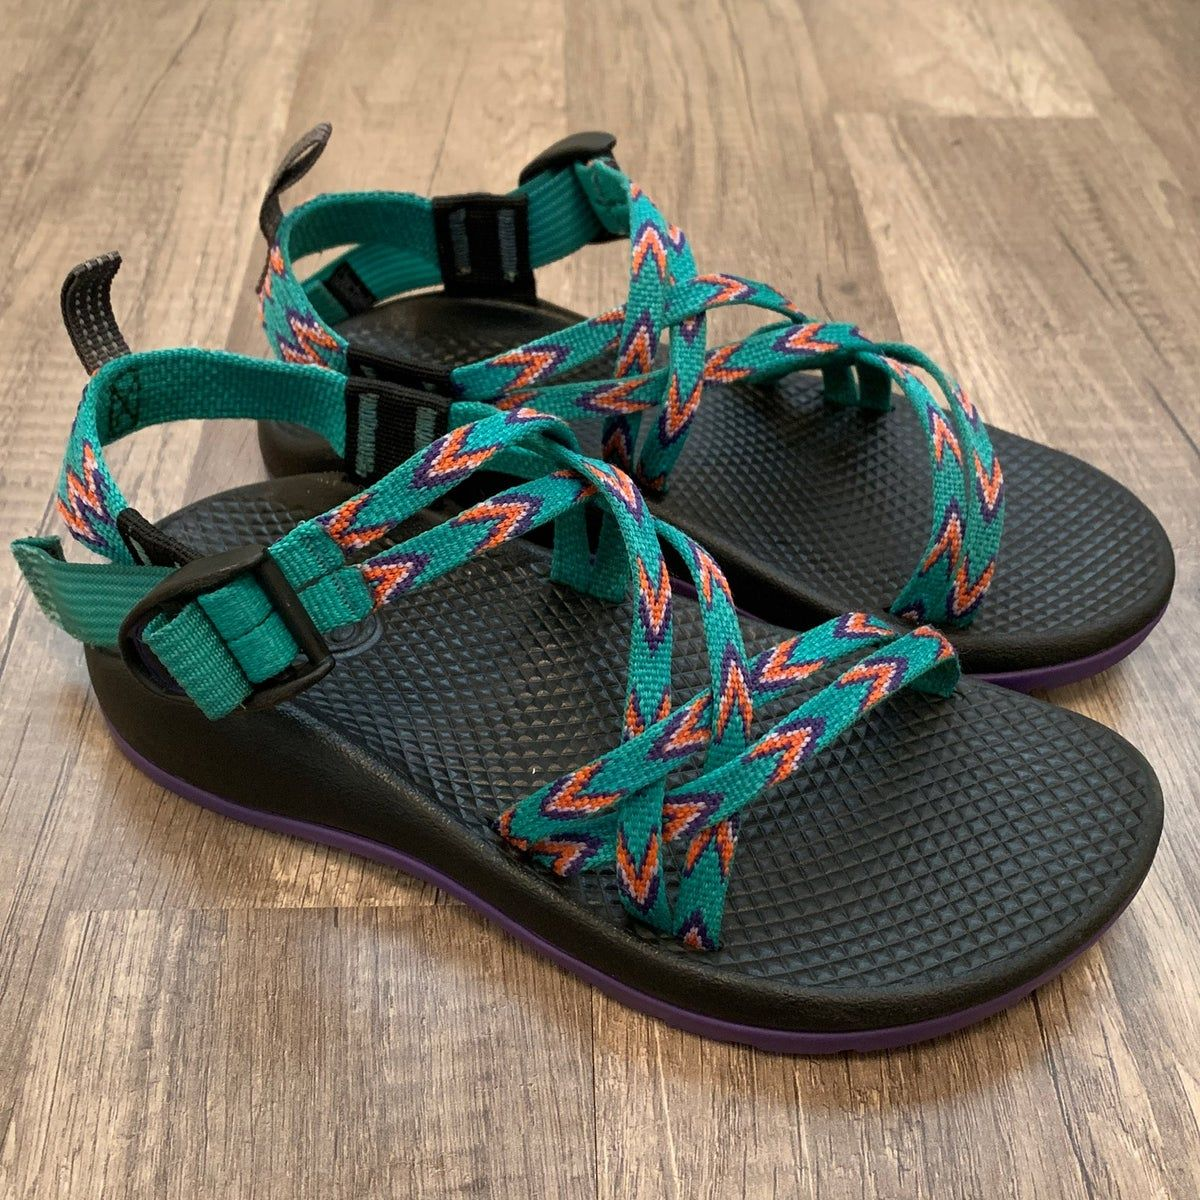 Youth Girls Chaco Sandals Sz 3 on